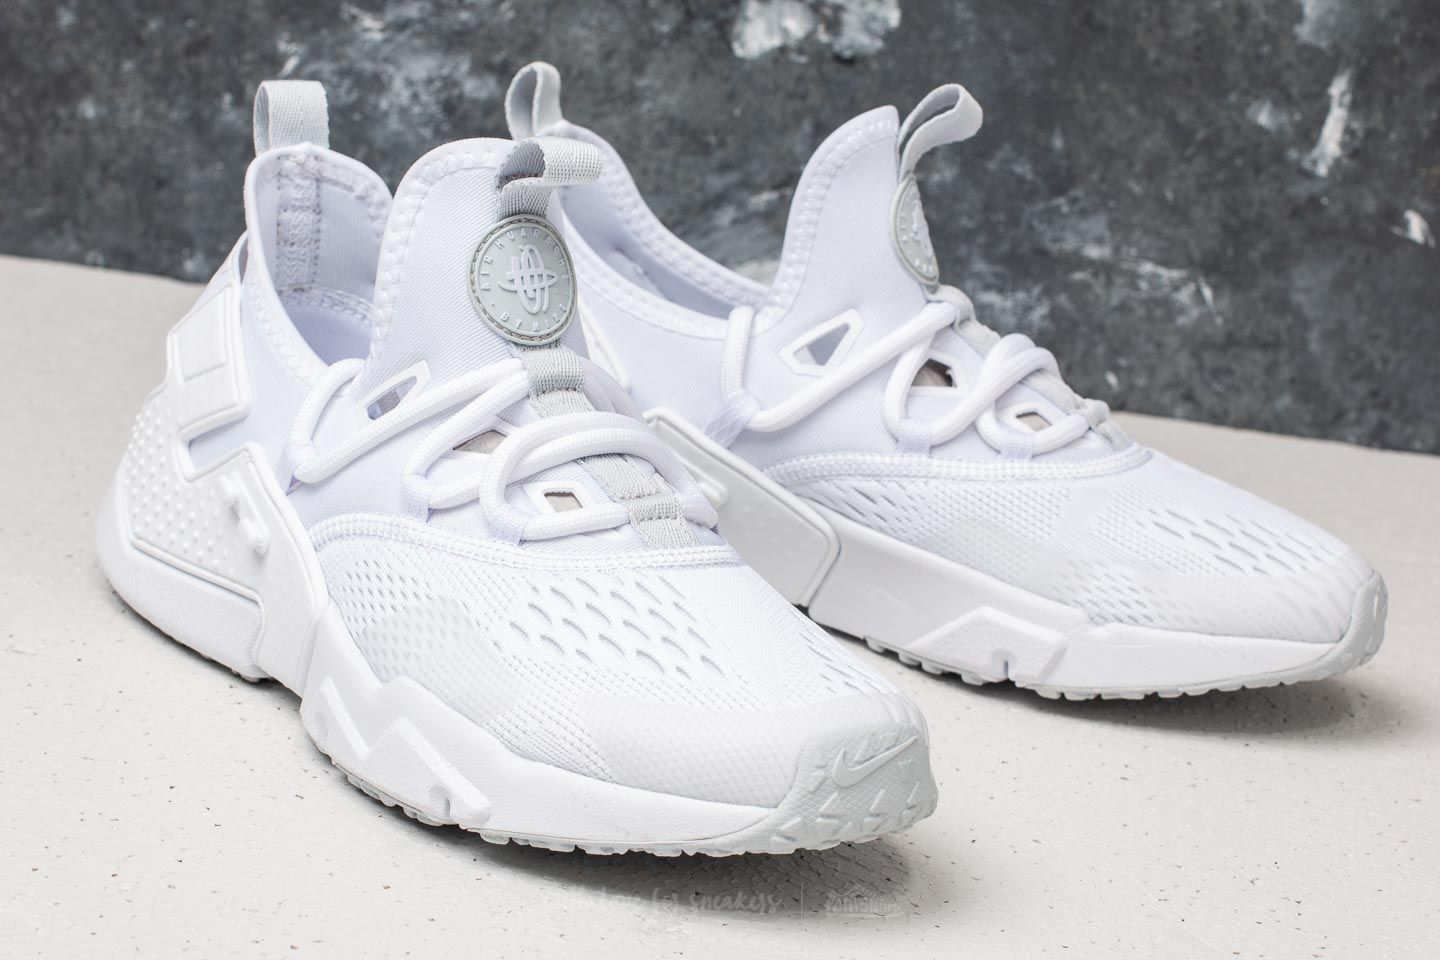 0767d90970a2 ... coupon code for nike air huarache drift br white pure platinum at a  great price 136